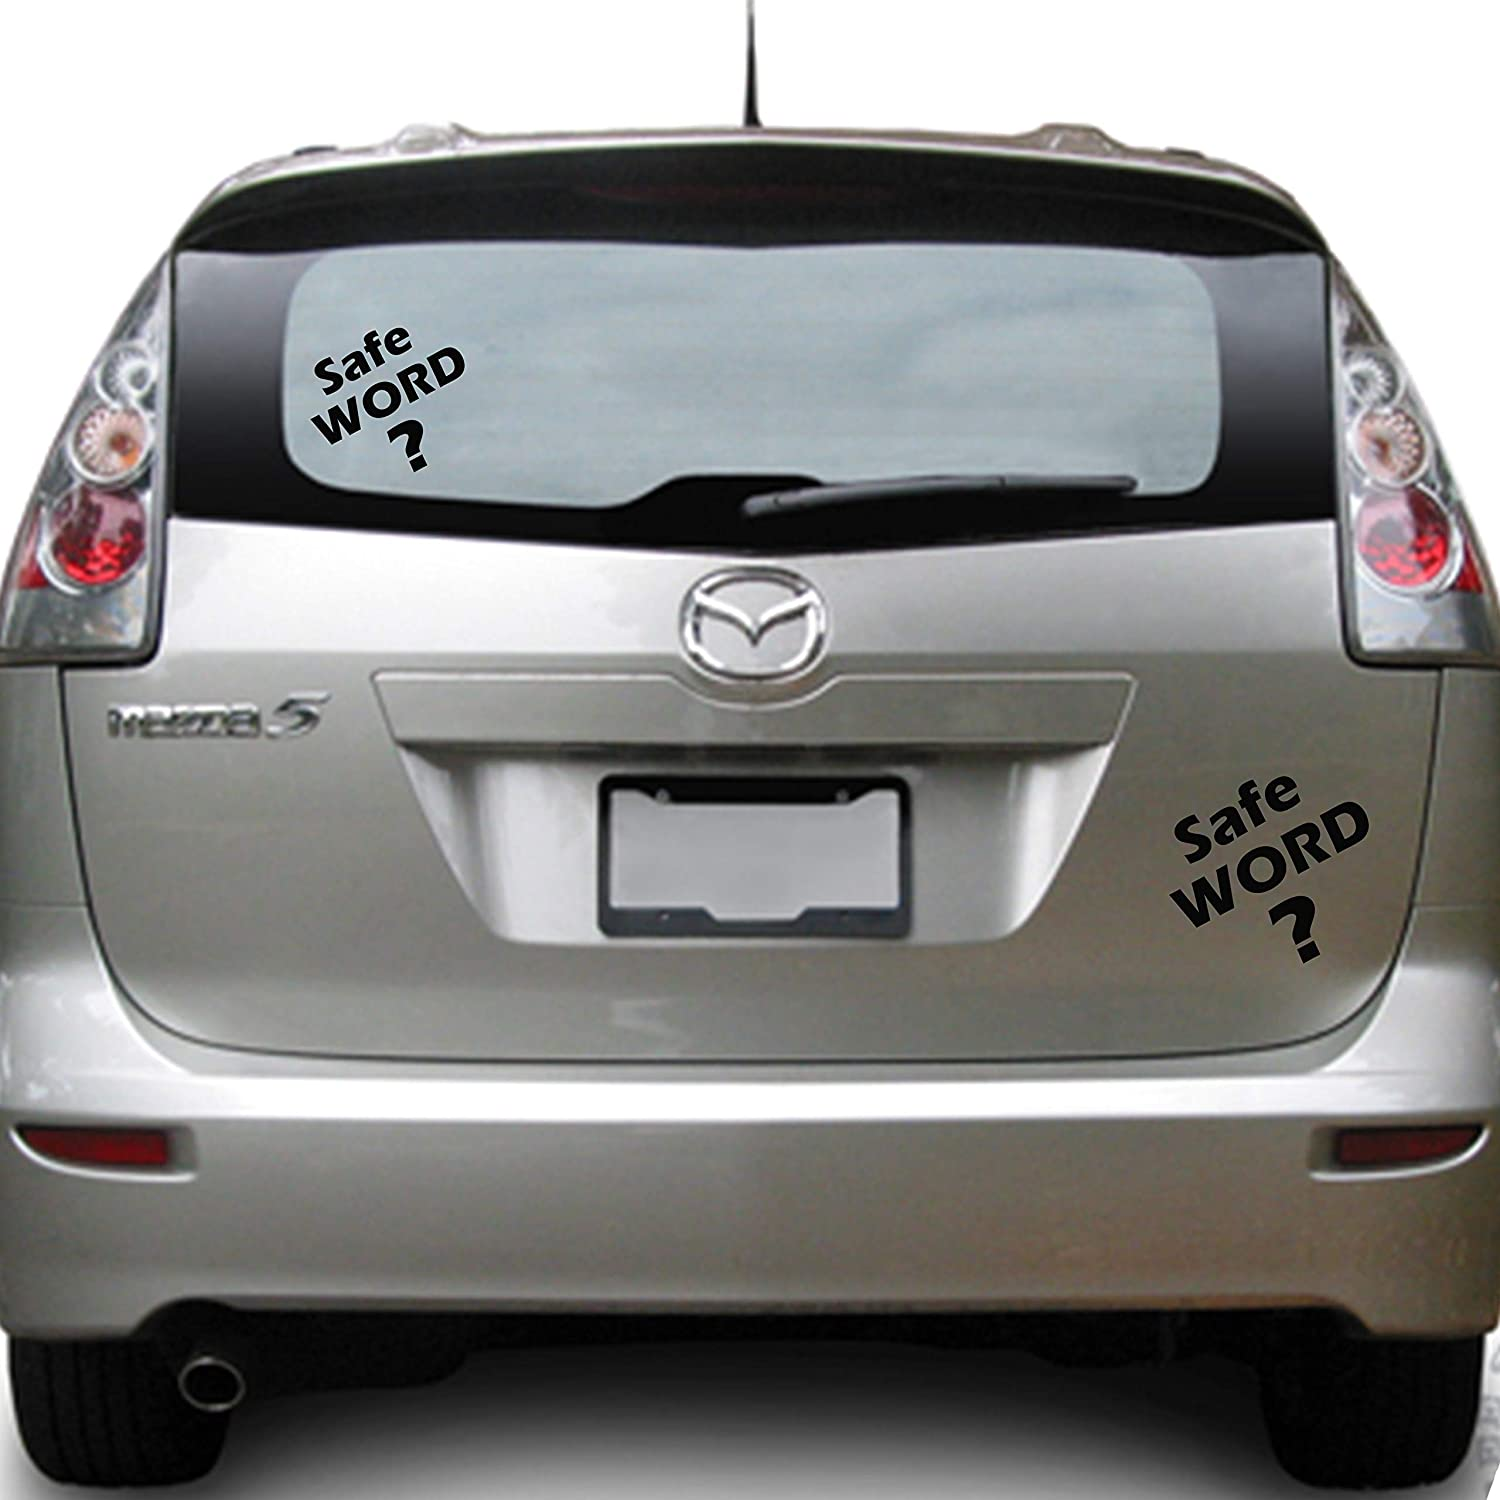 BDSM Safe Word Vinyl Car Window Decal Sticker